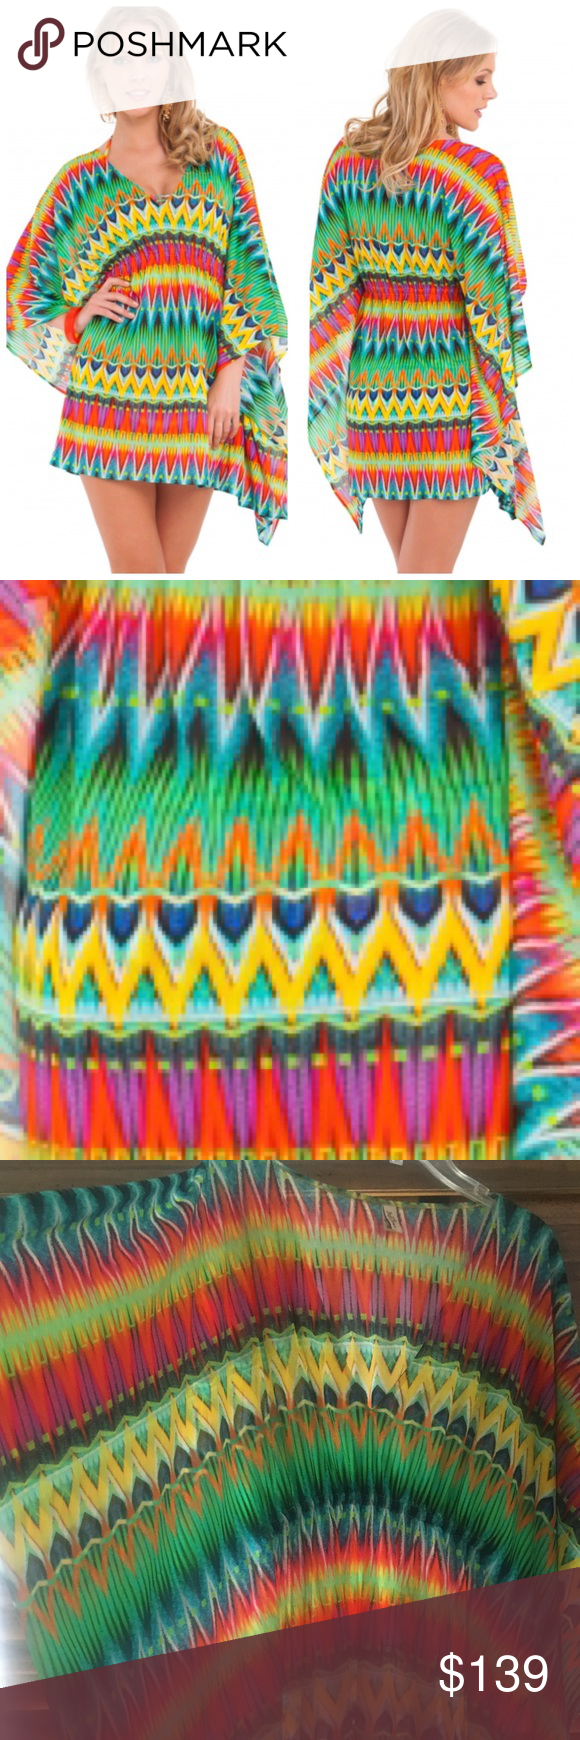 Luli Fama : Tulum Caftan - One Sz Stunning Caftan/Coverup. Worn once!!! Elastic waist balances the breezy silhouette of a playful crepe caftan splashed with vibrant, eye-catching color. Short Caftan Dress / Engineered Print /100% Nylon / Relaxed Fit With Elastic Ruching Under Bustline! Luli Fama Swim Coverups